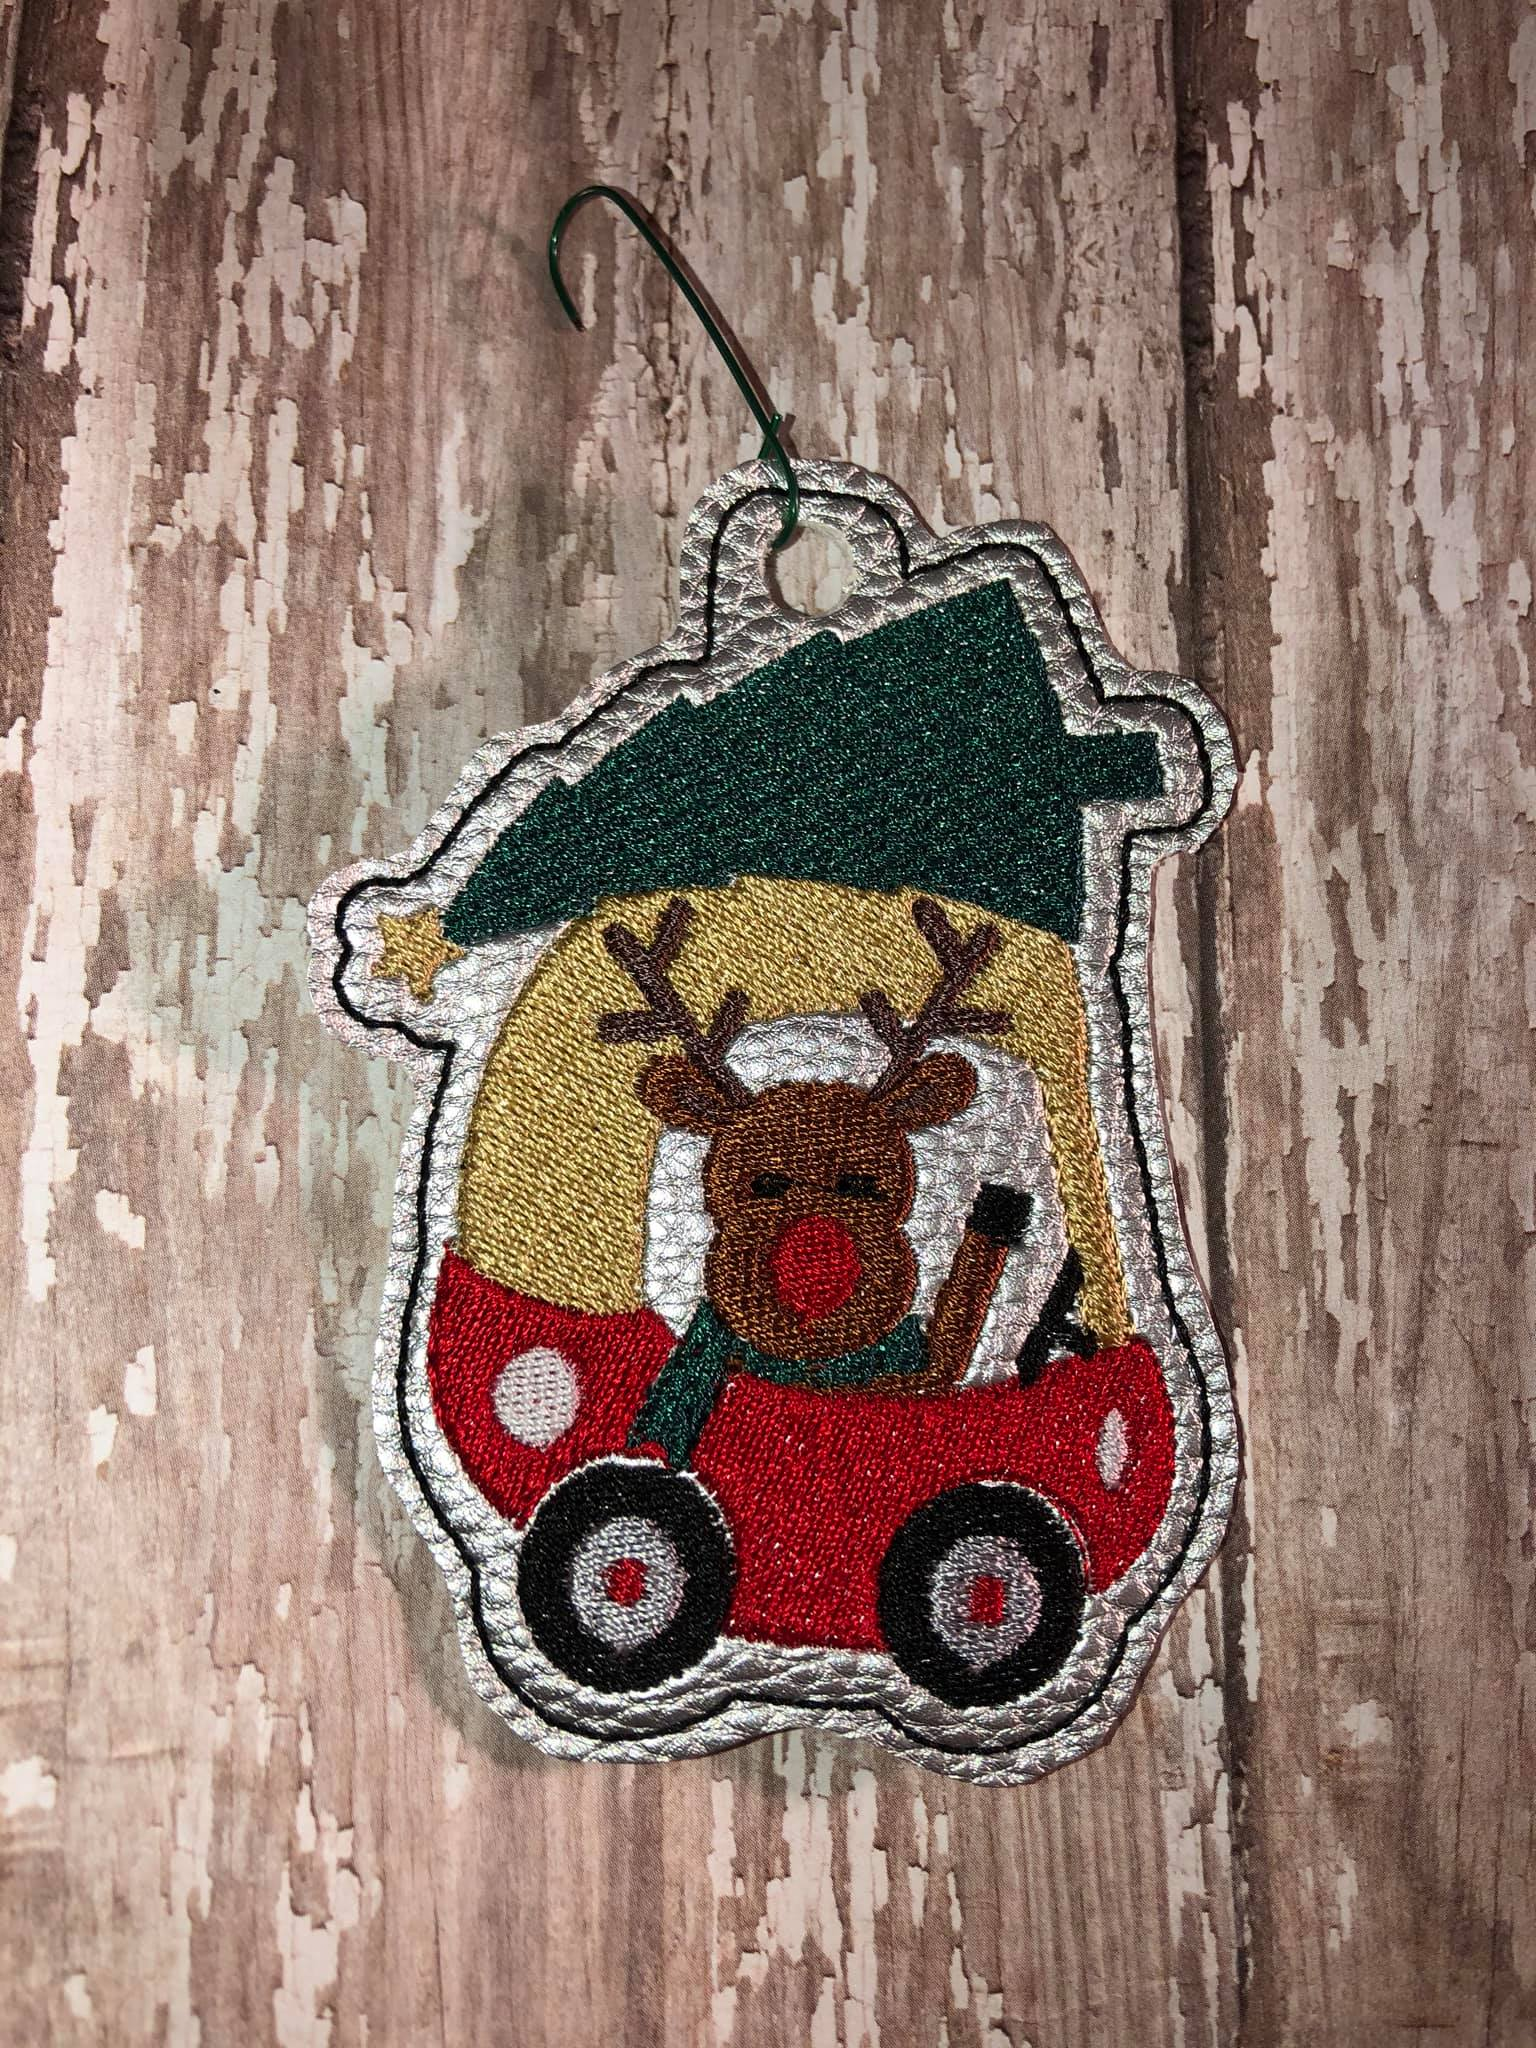 Little Red Car Ornament Embroidery Design